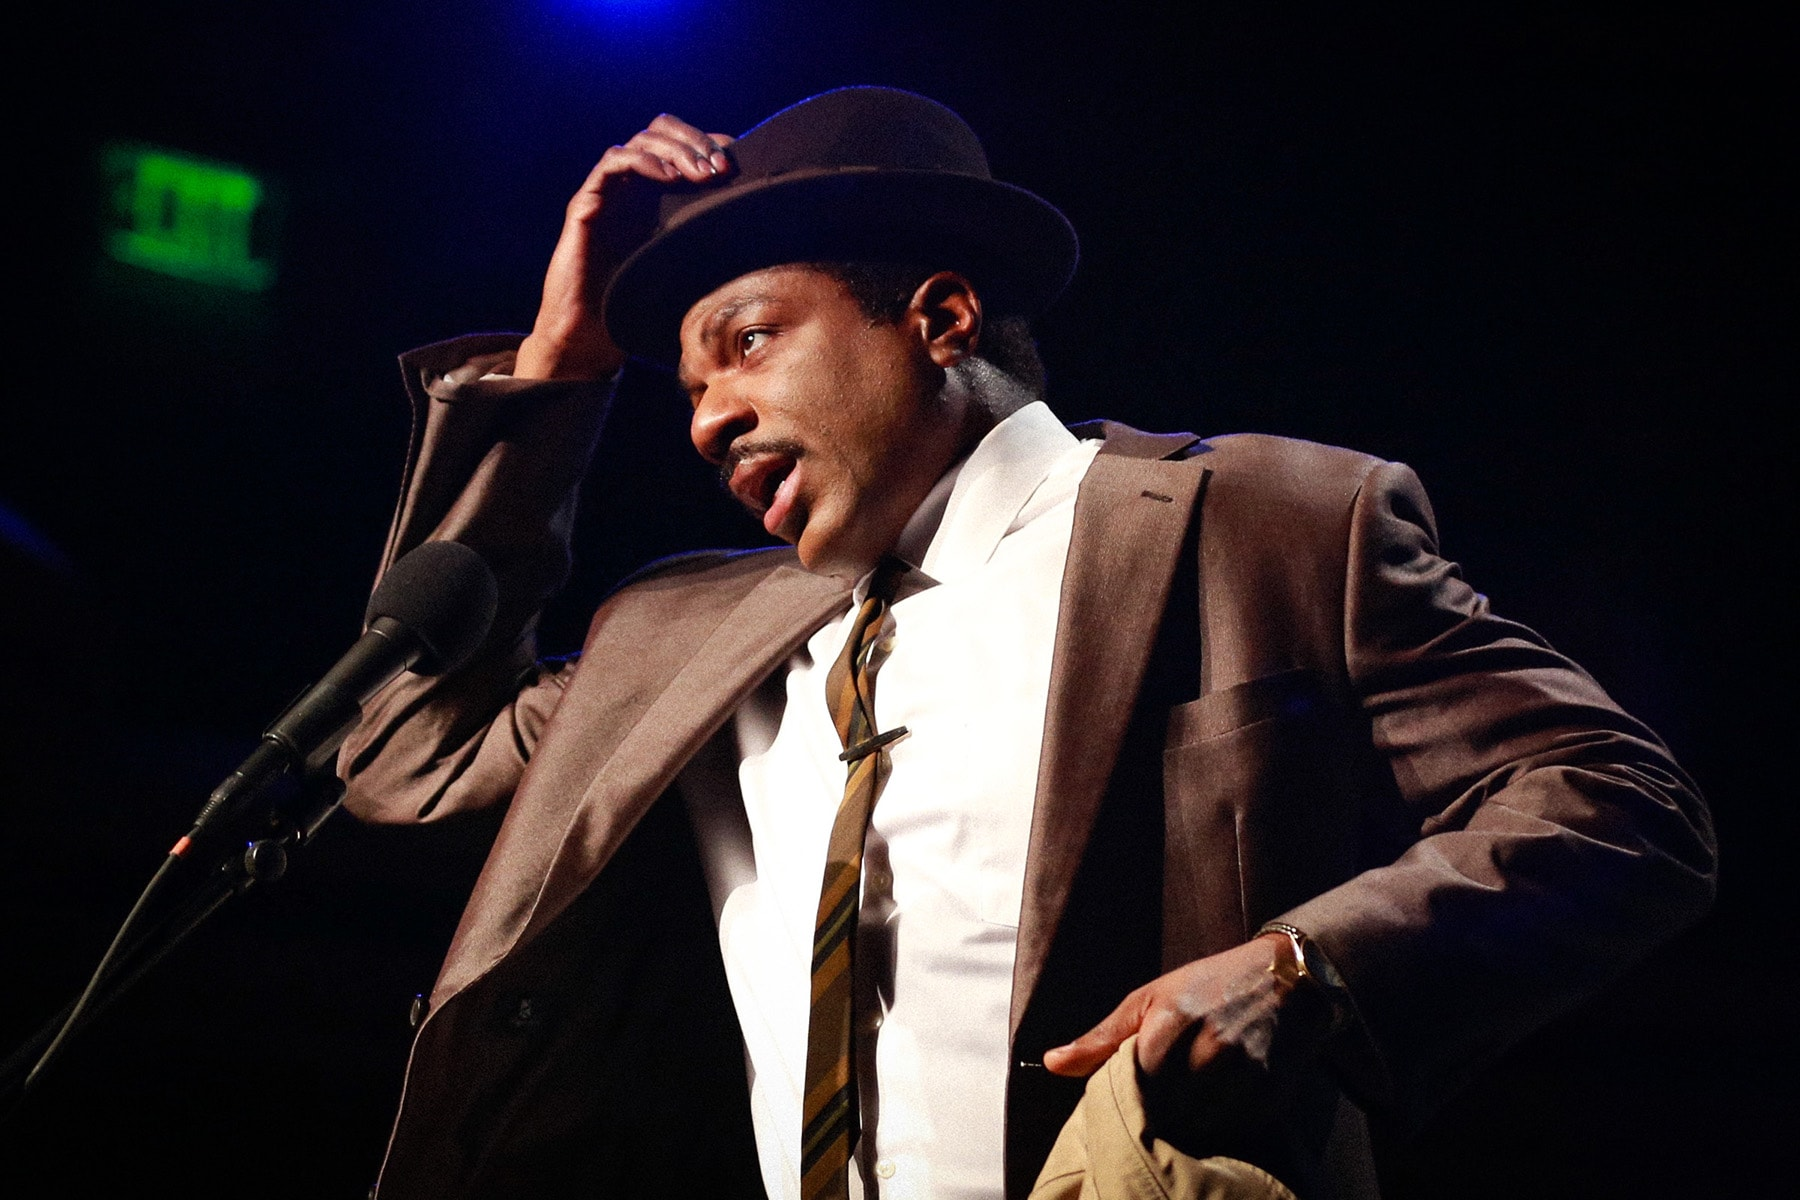 Gilbert Glenn Brown as Dr. Martin Luther King Jr. in L.A. Theatre Works' The Mountaintop. Photo by Kirk Richard Smith.